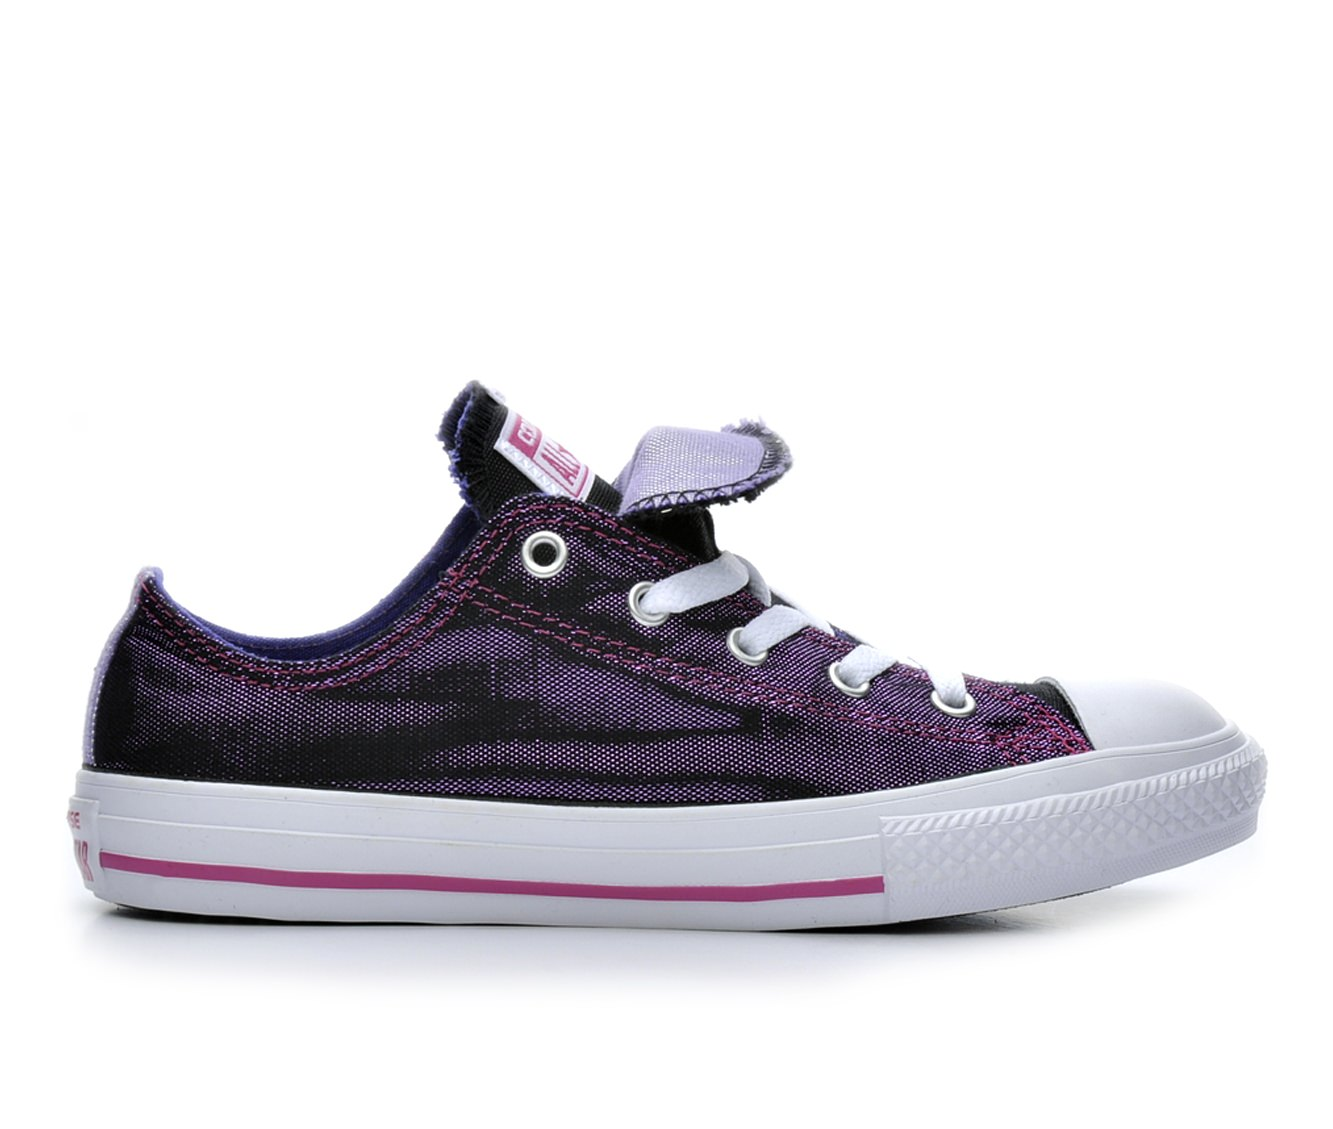 Girls' Converse Chuck Taylor Double Tongue Shimmer Sneakers (Purple)